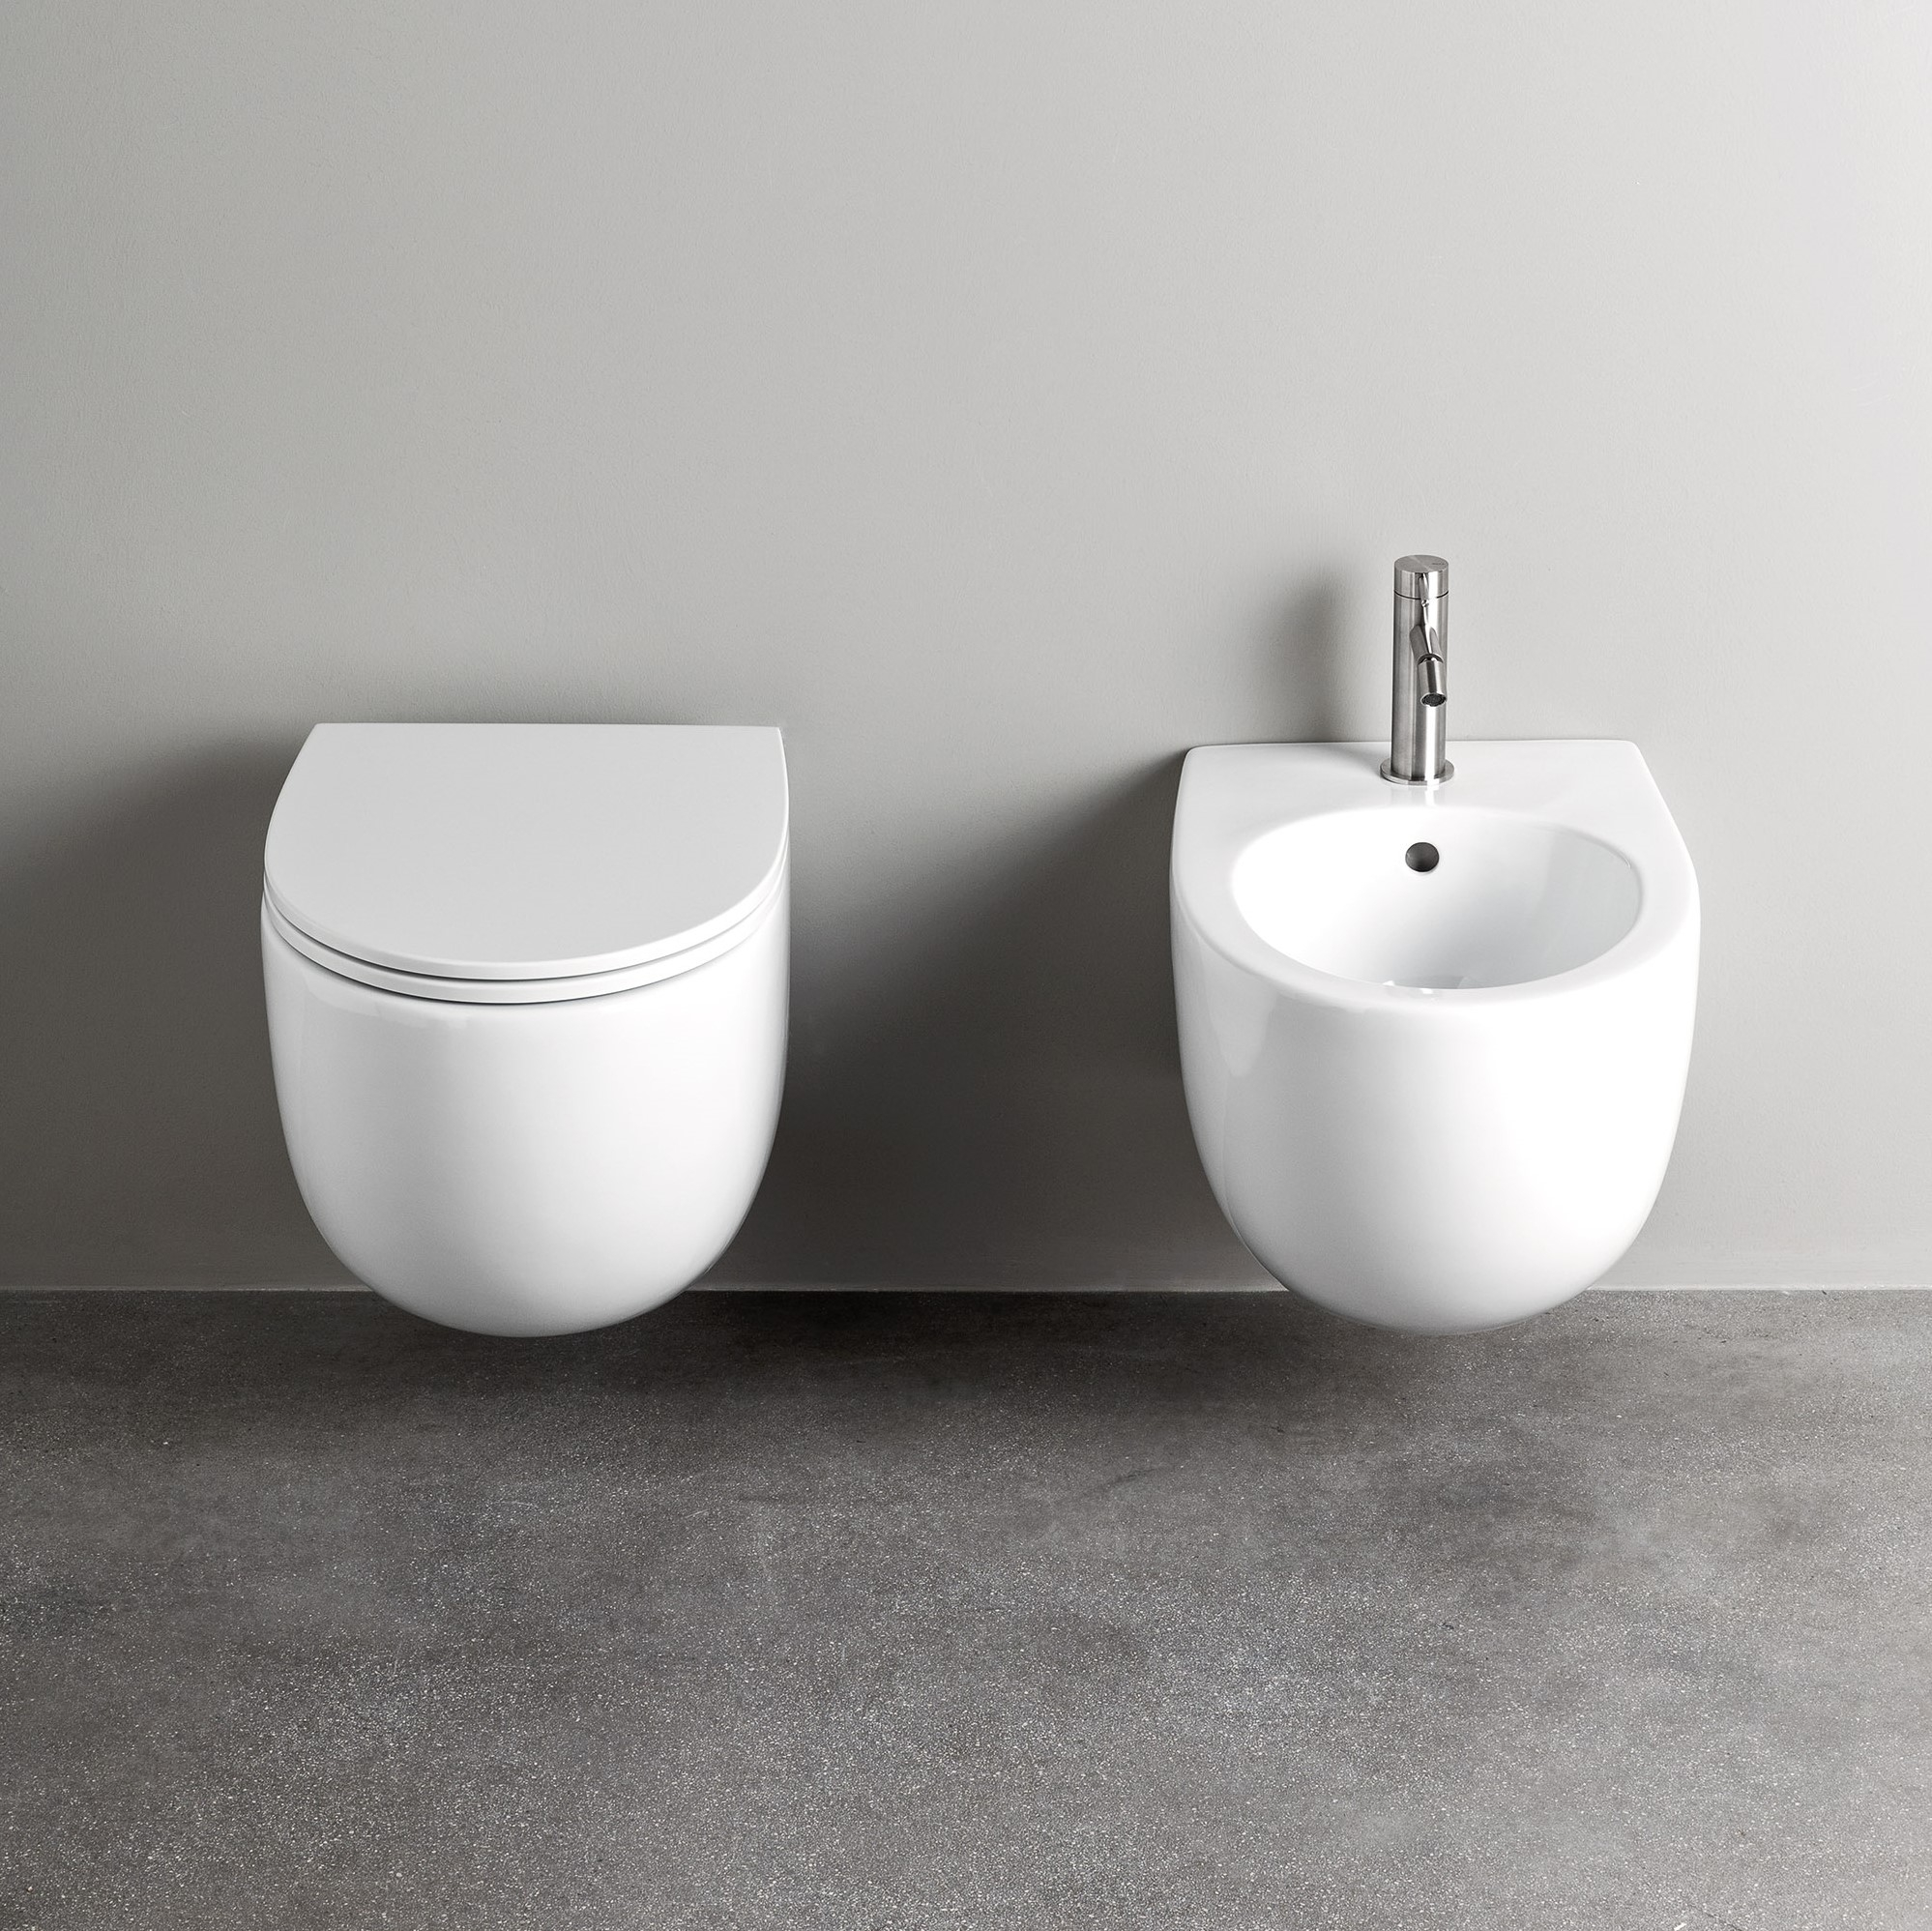 Muretto Per Sanitari Sospesi rexa design about.2 wc sospeso - tattahome